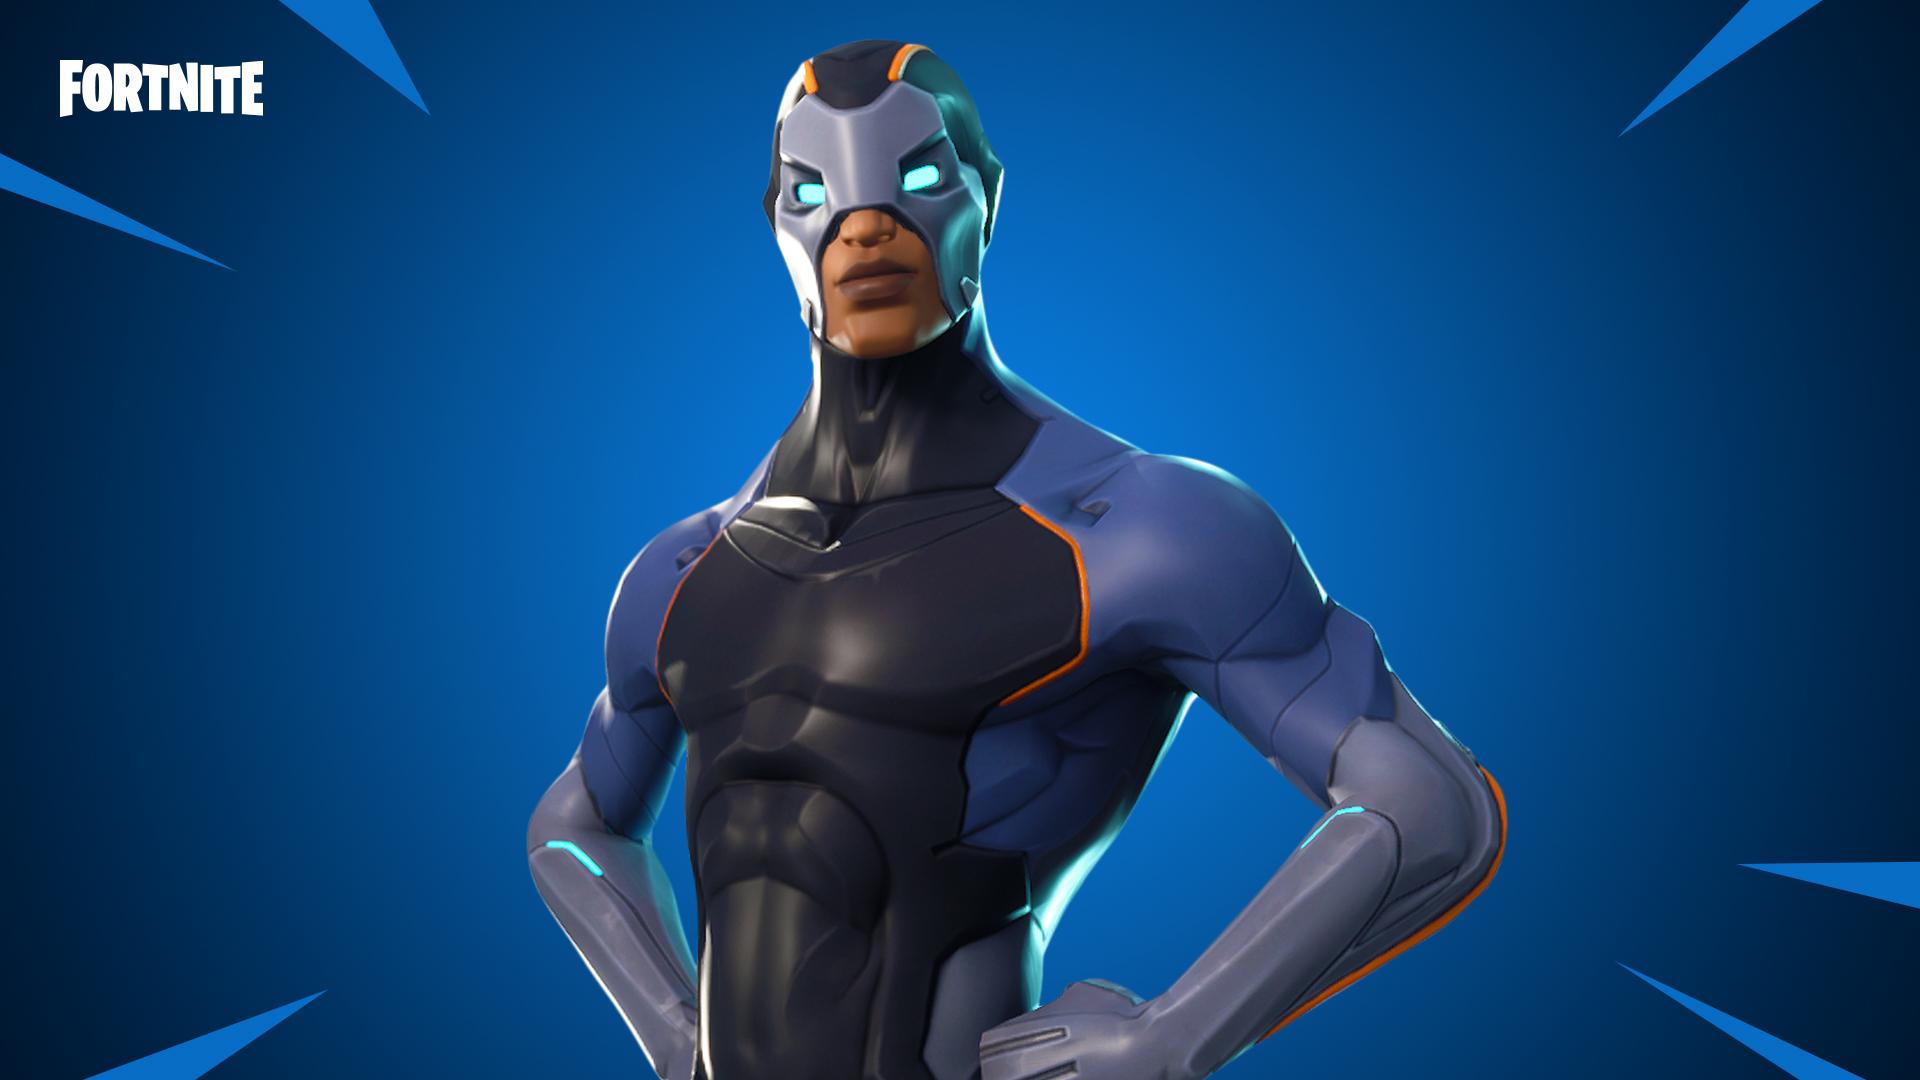 - fortnite characters holding controllers